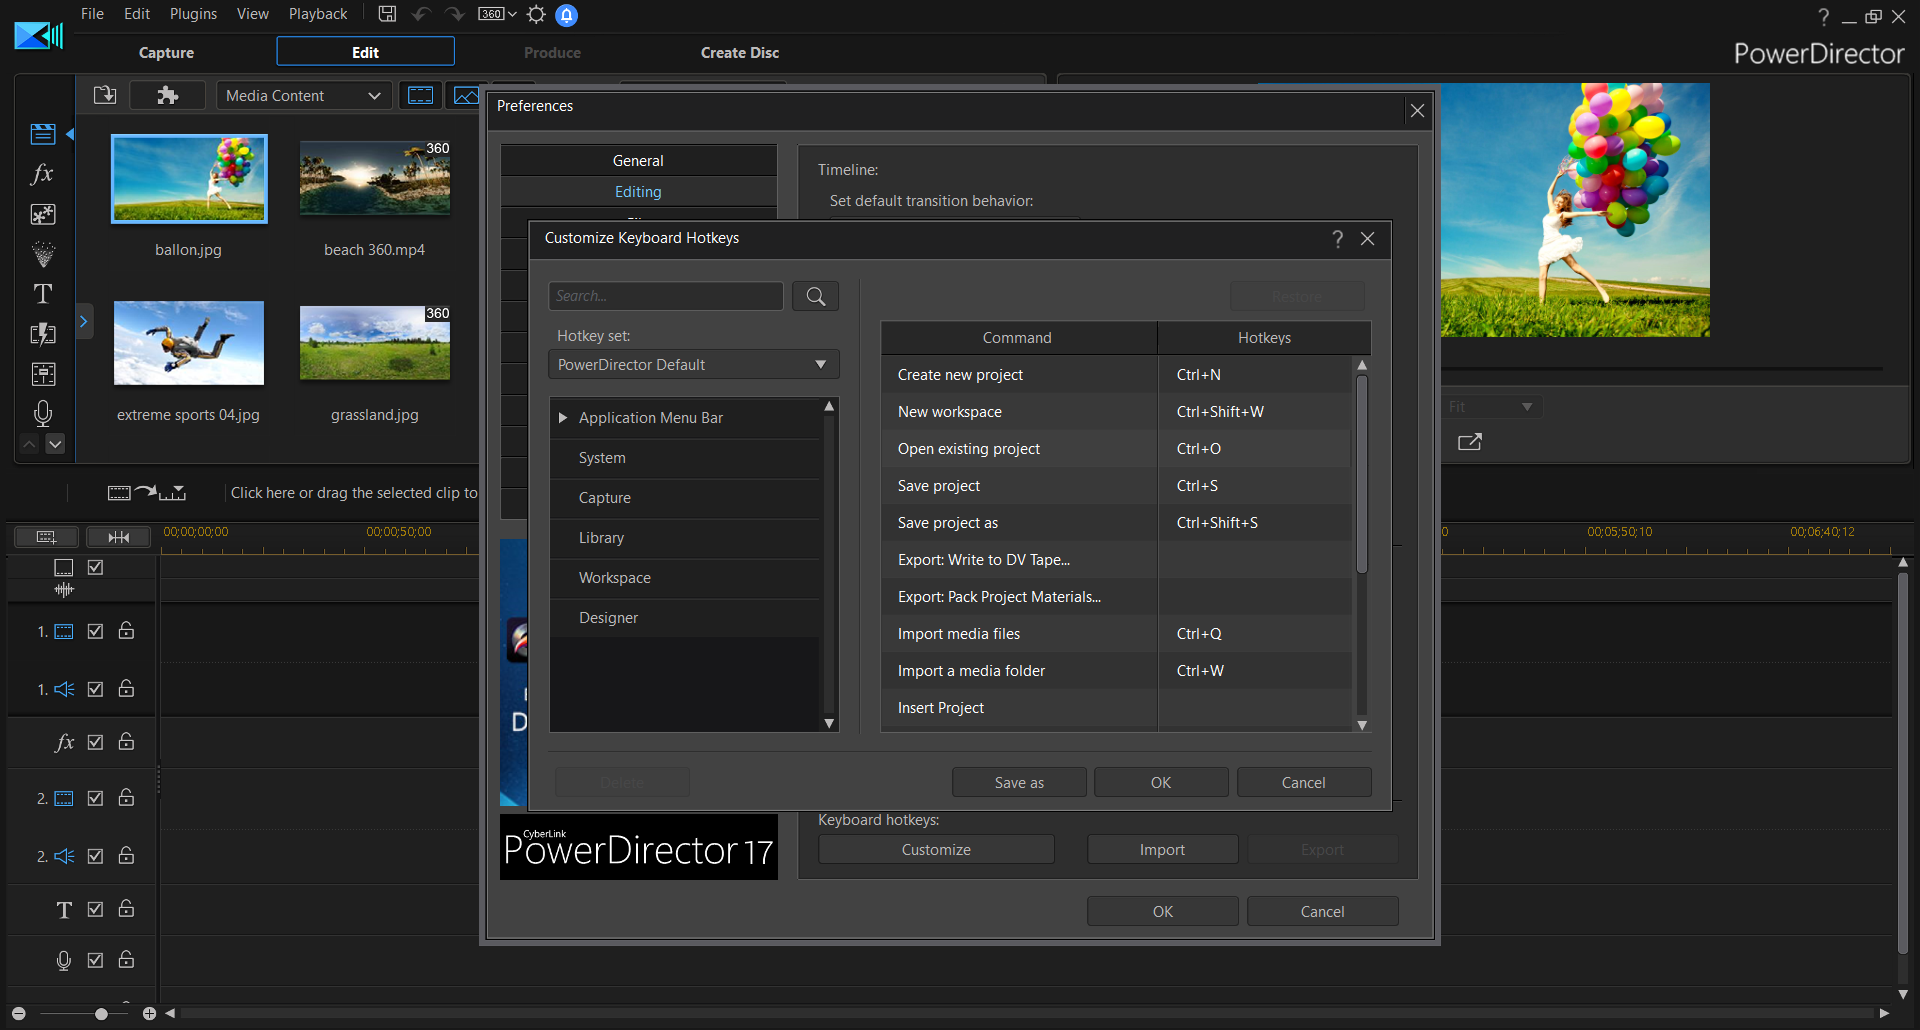 Powerdirector 17